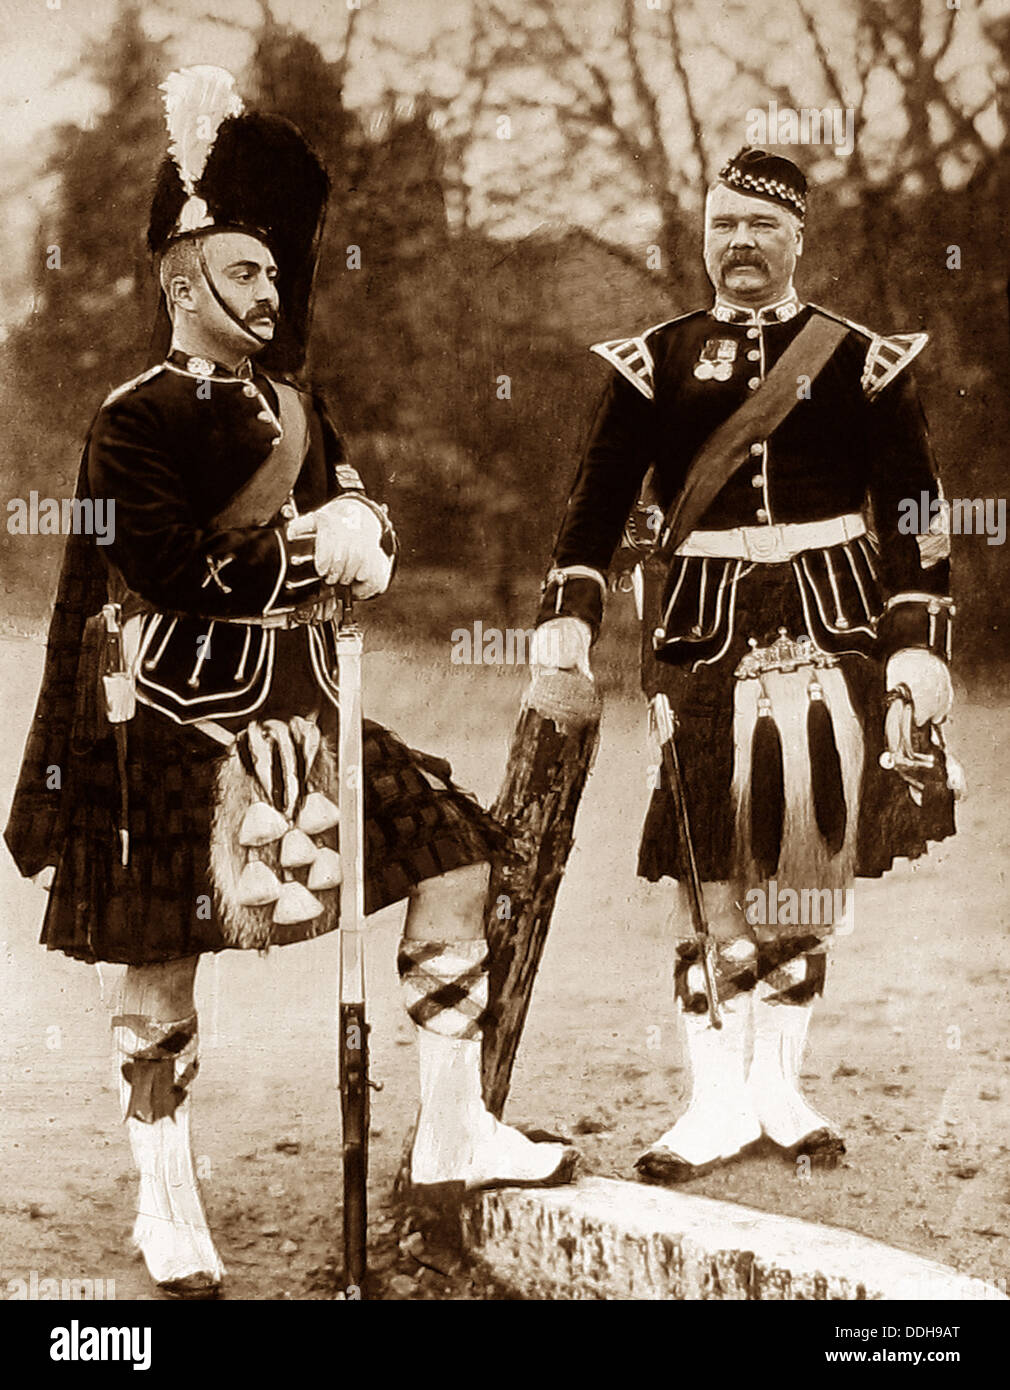 93rd Sutherland Highland Regiment Drum Major and Sergeant early 1900s - Stock Image